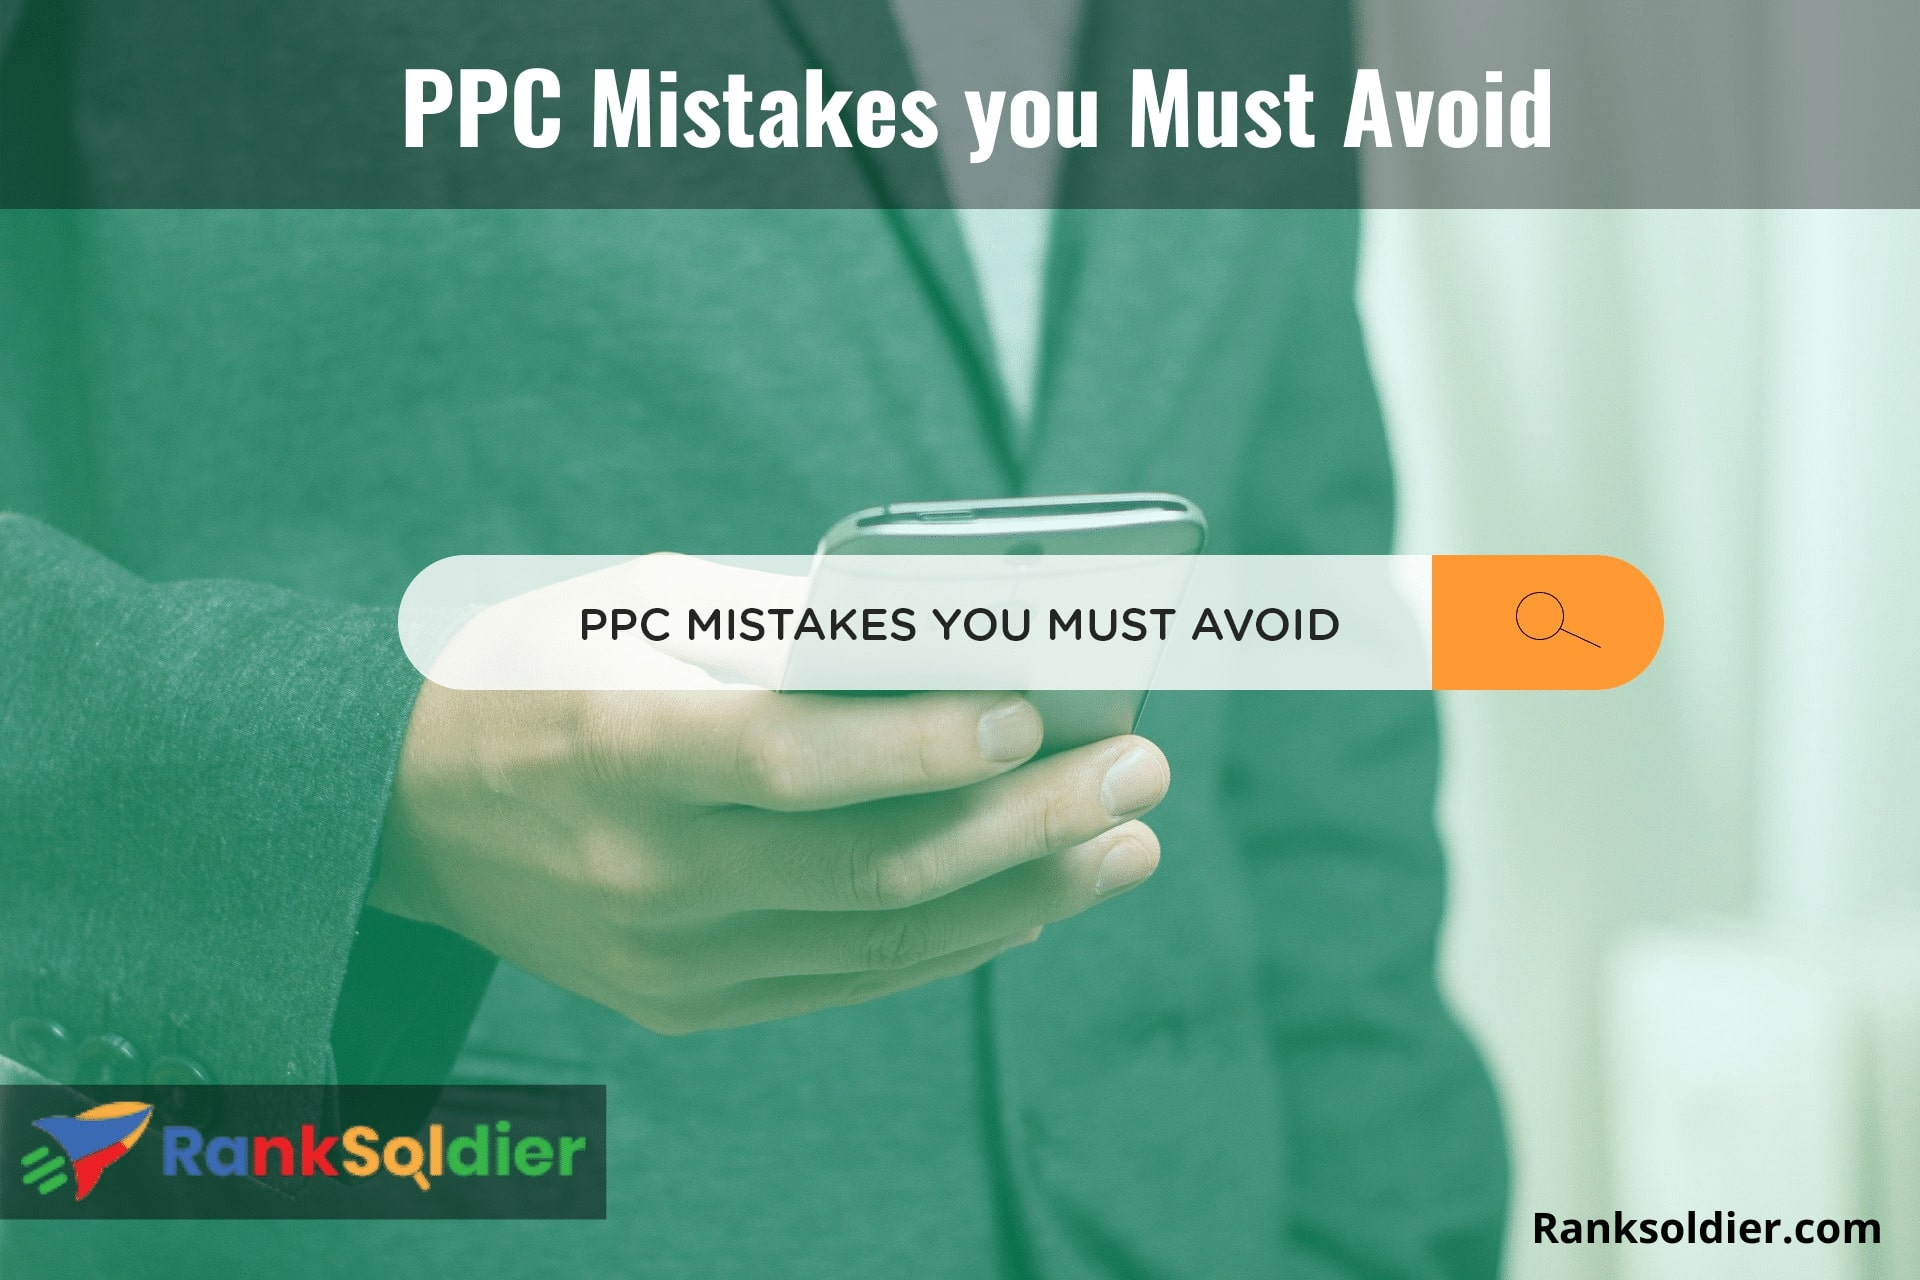 PPC Mistakes you Must Avoid